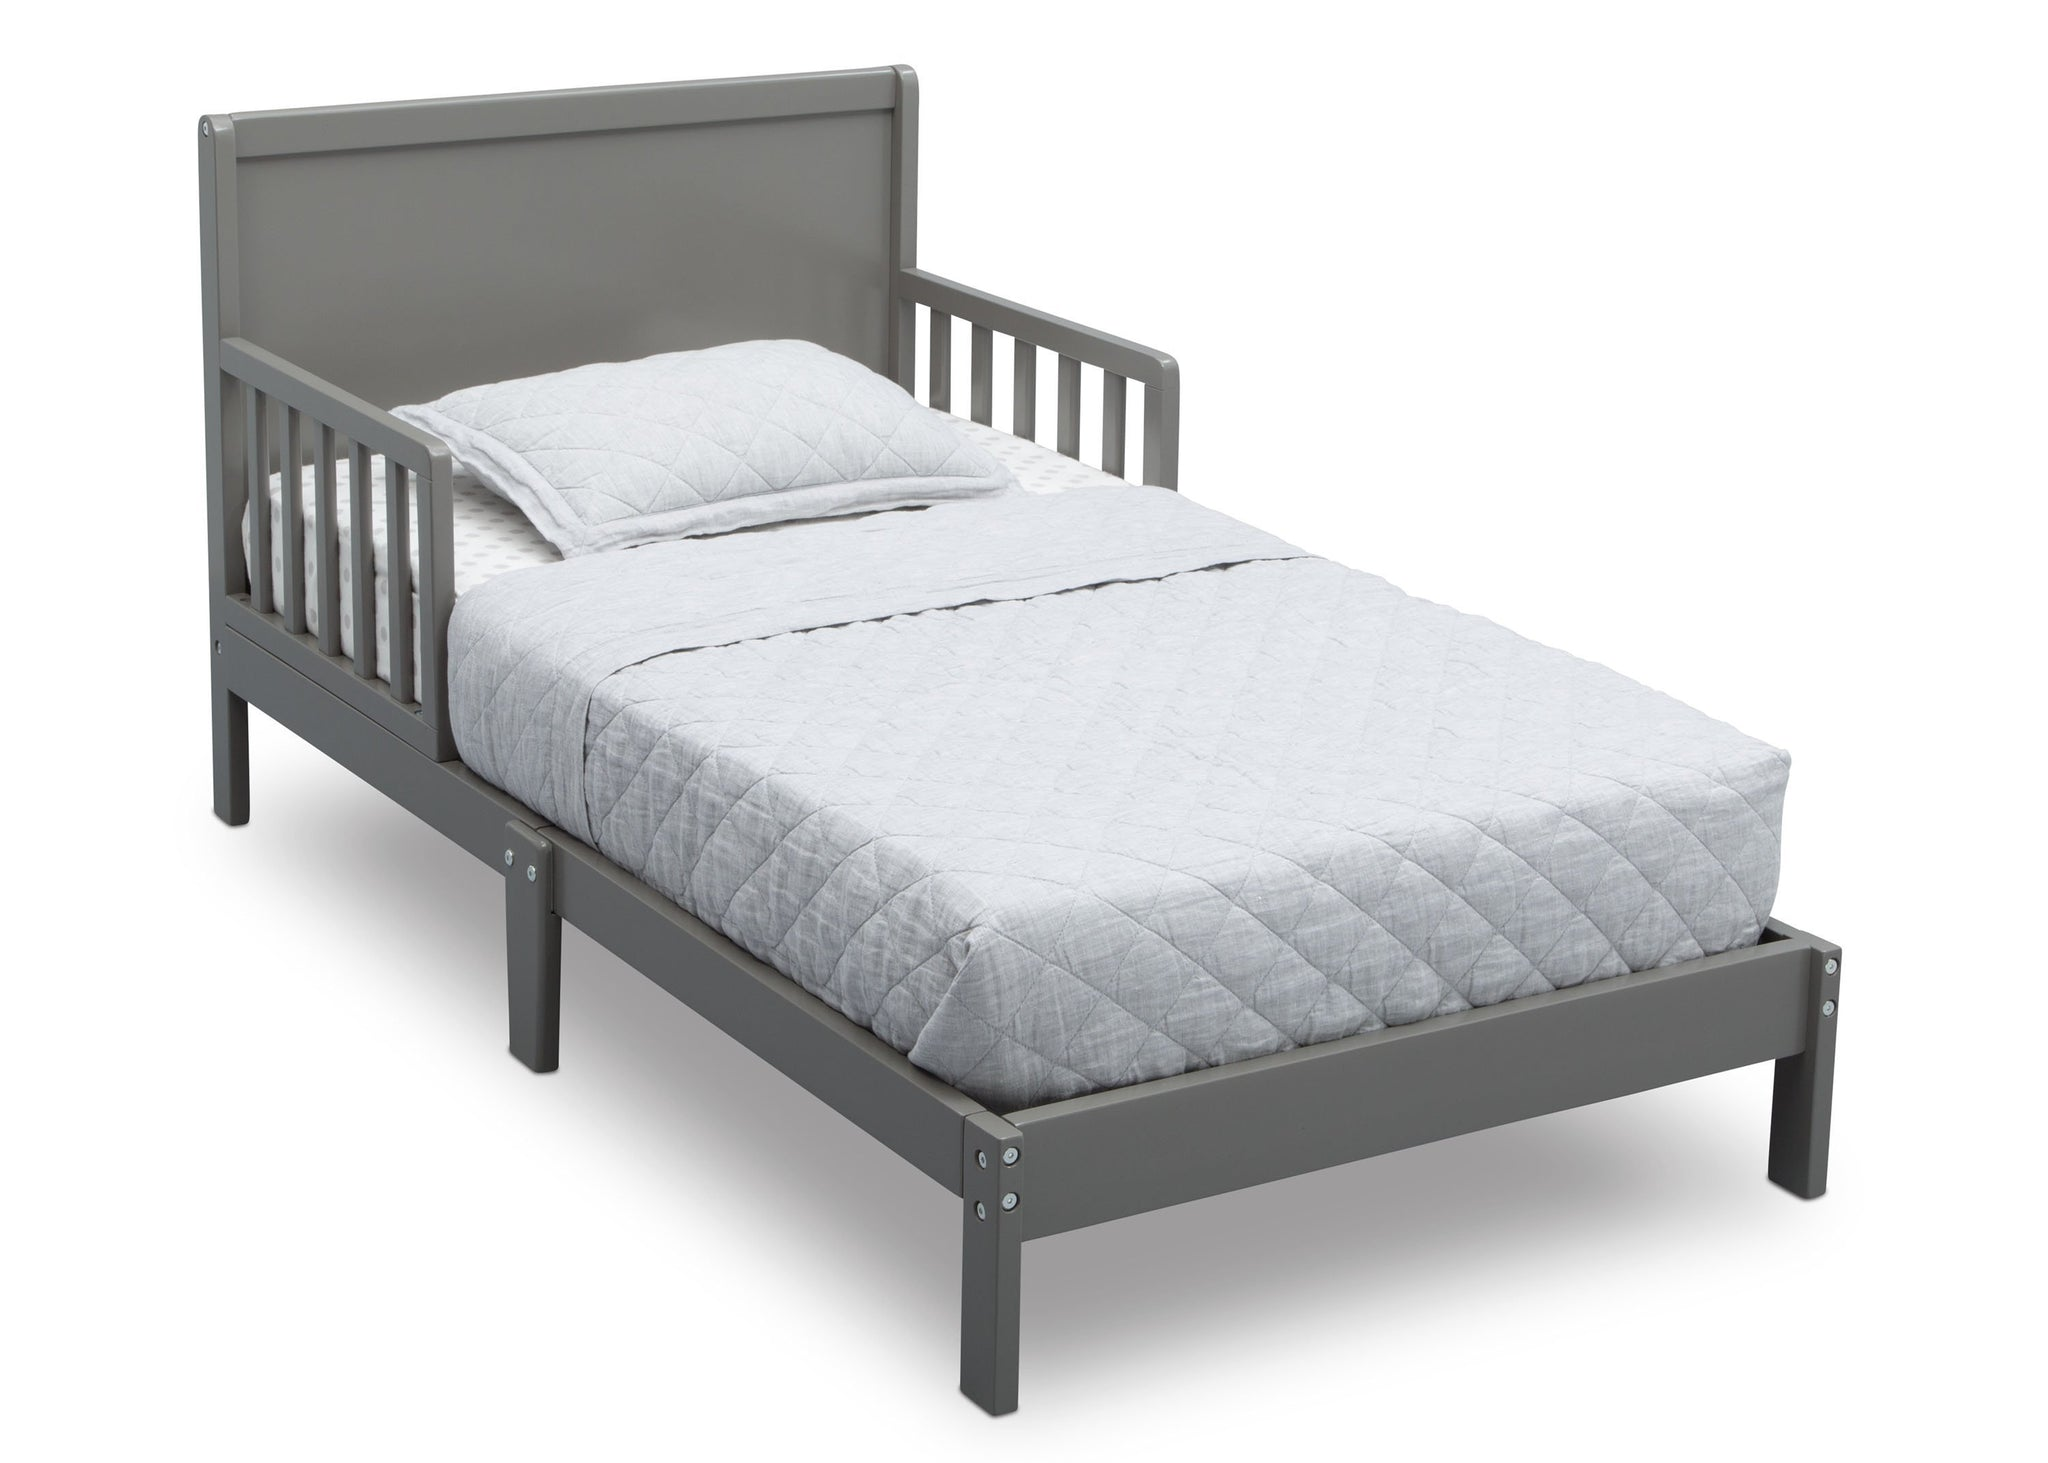 Delta Children Classic Grey (028) My First Room Toddler 3-Piece Room-in-a-Box, Twin Bed, a3a